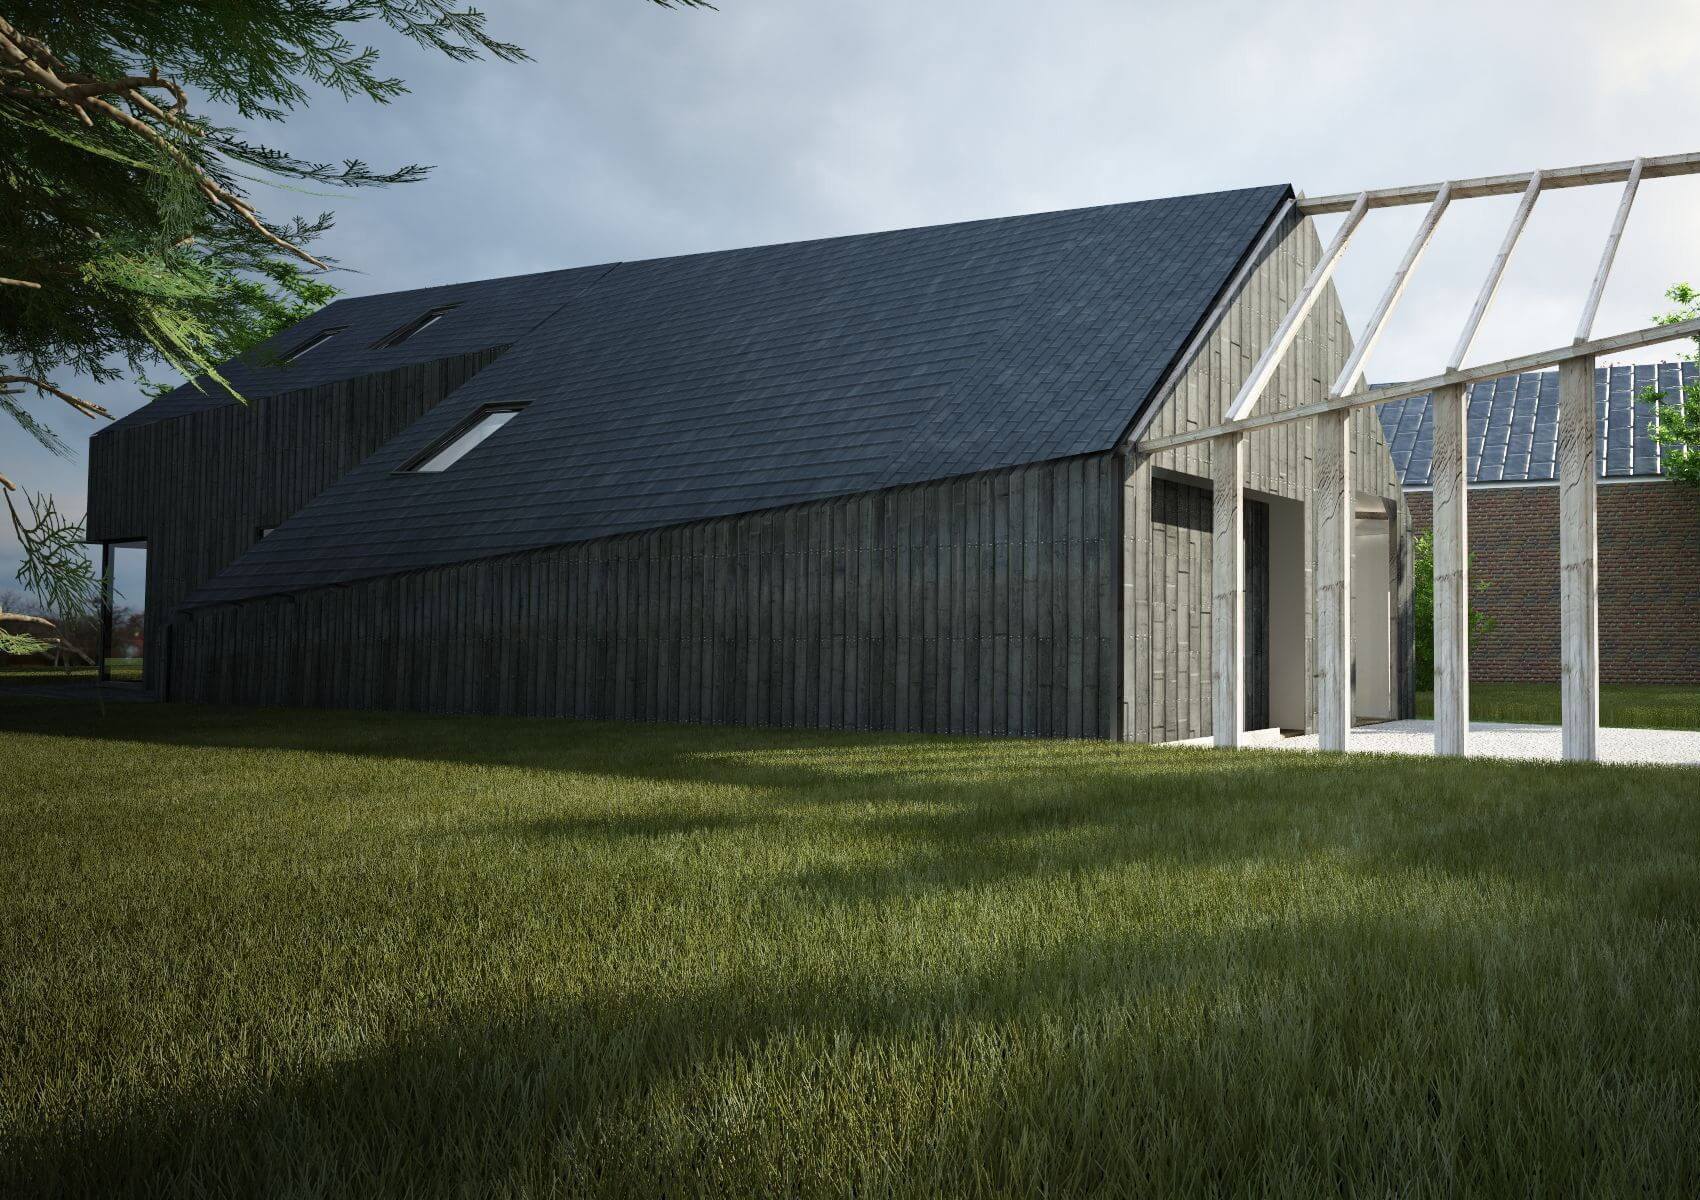 Du renovation of a farm and creating a passive house